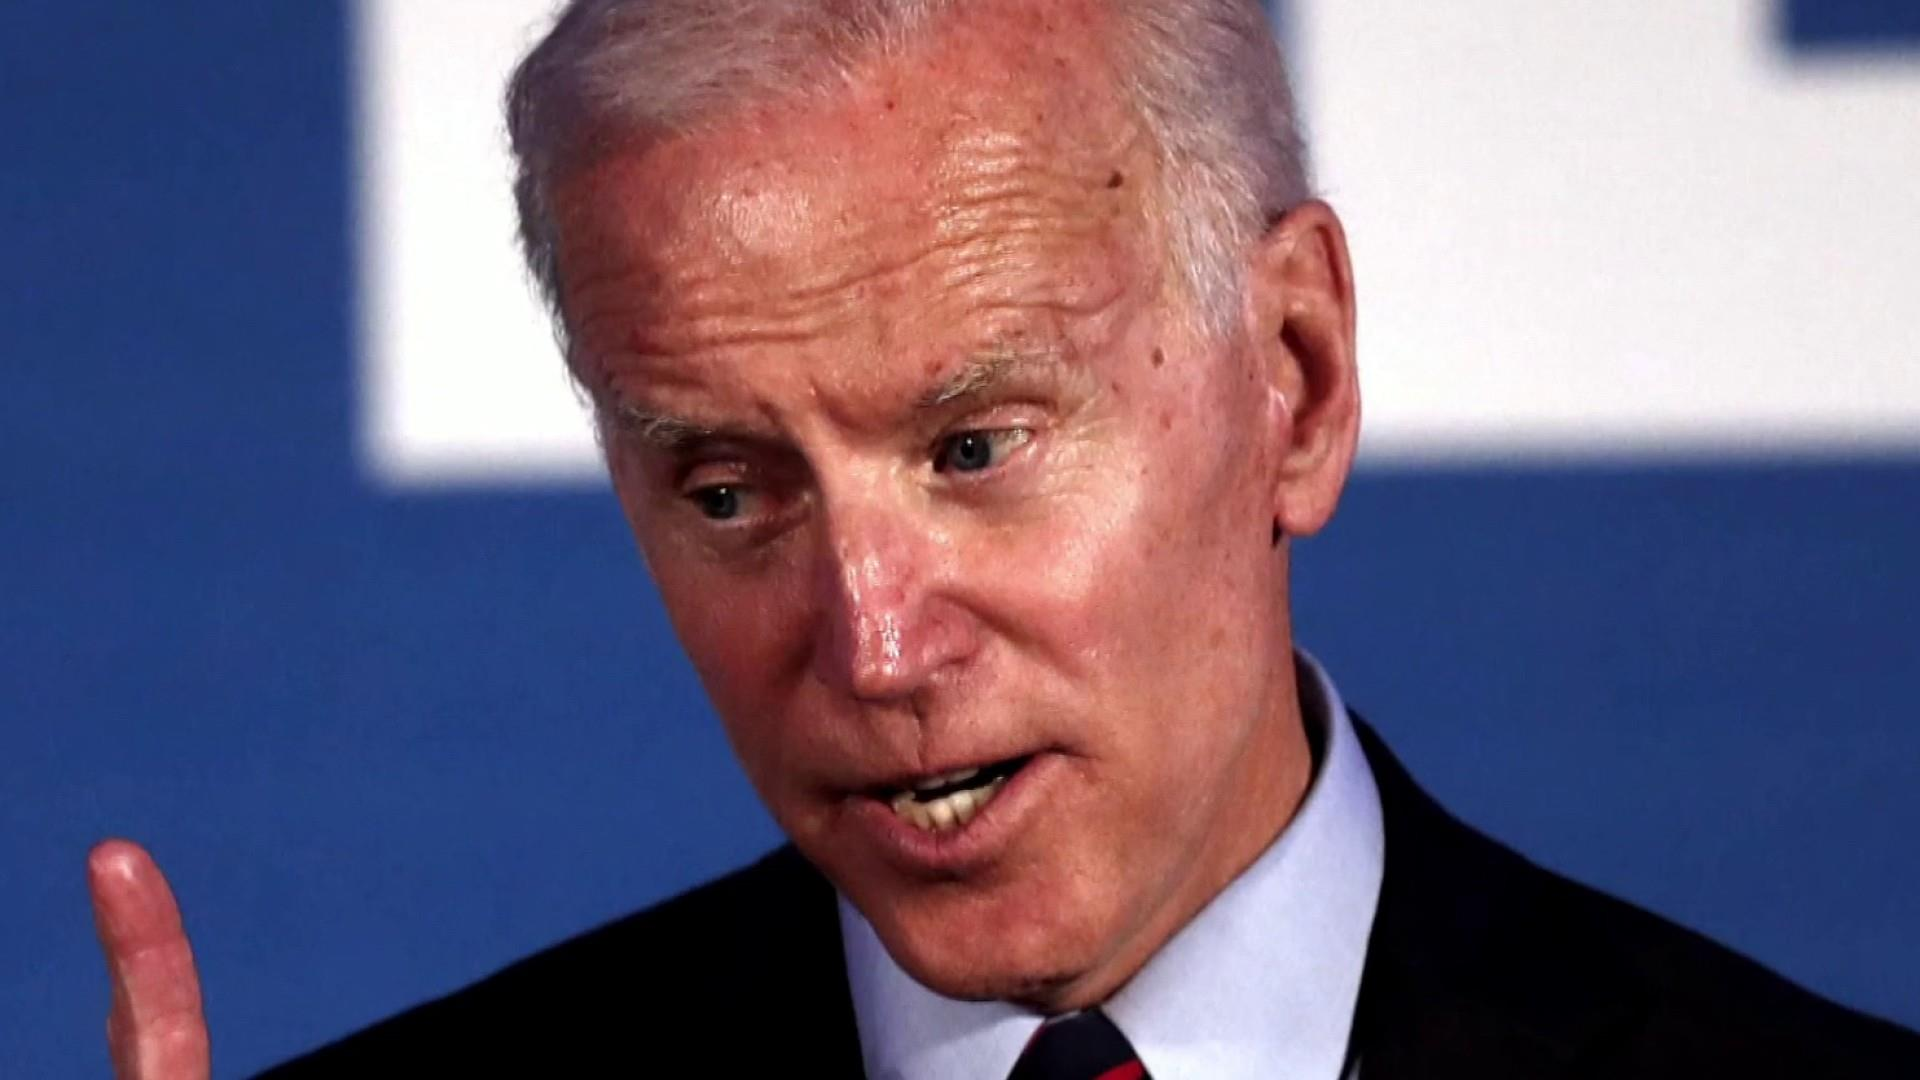 Biden campaign struggles to answer on abortion